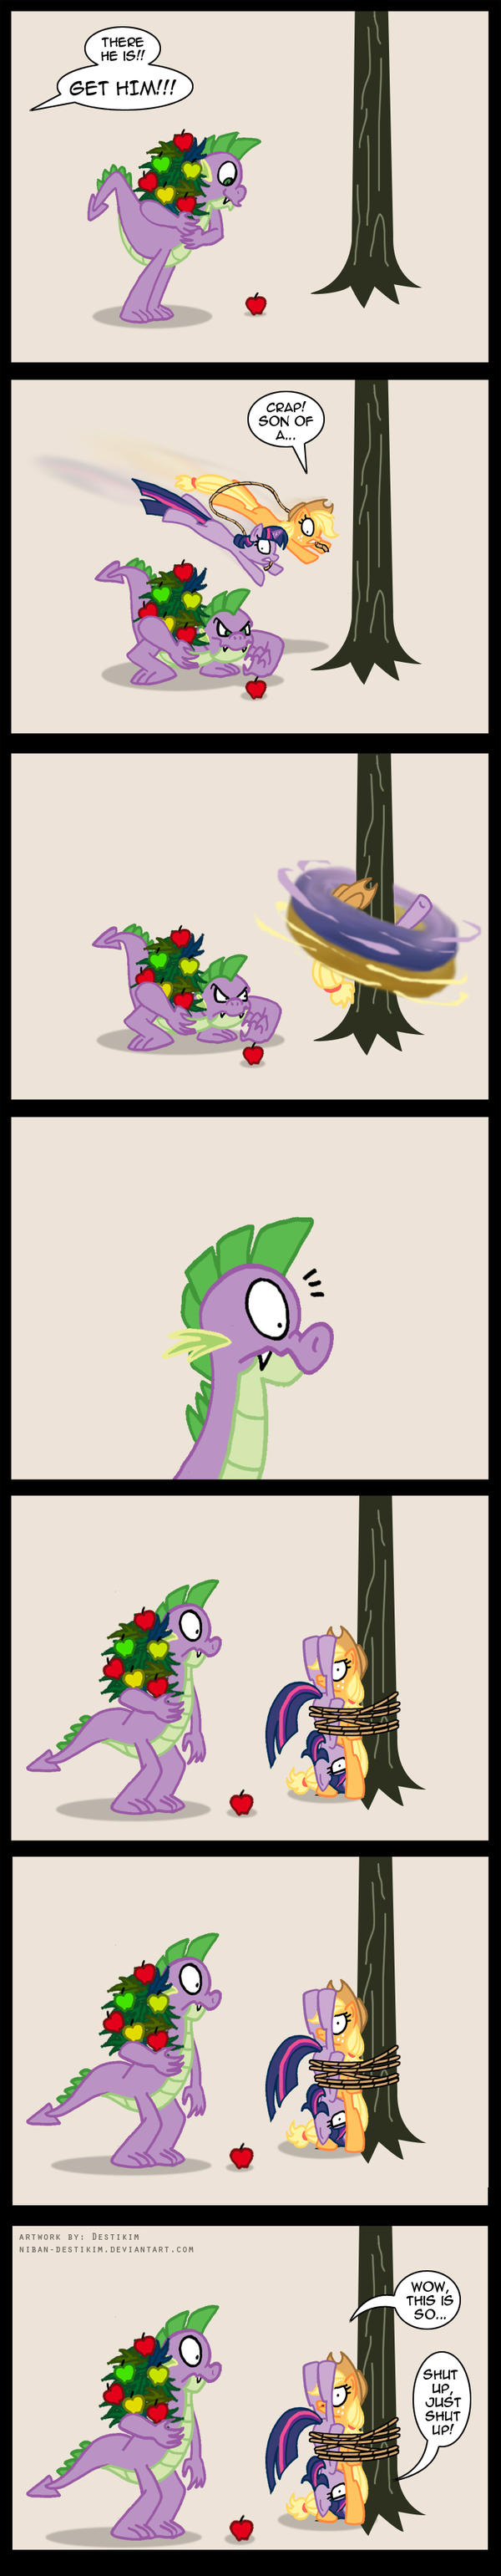 Lasso Spike by Niban-Destikim